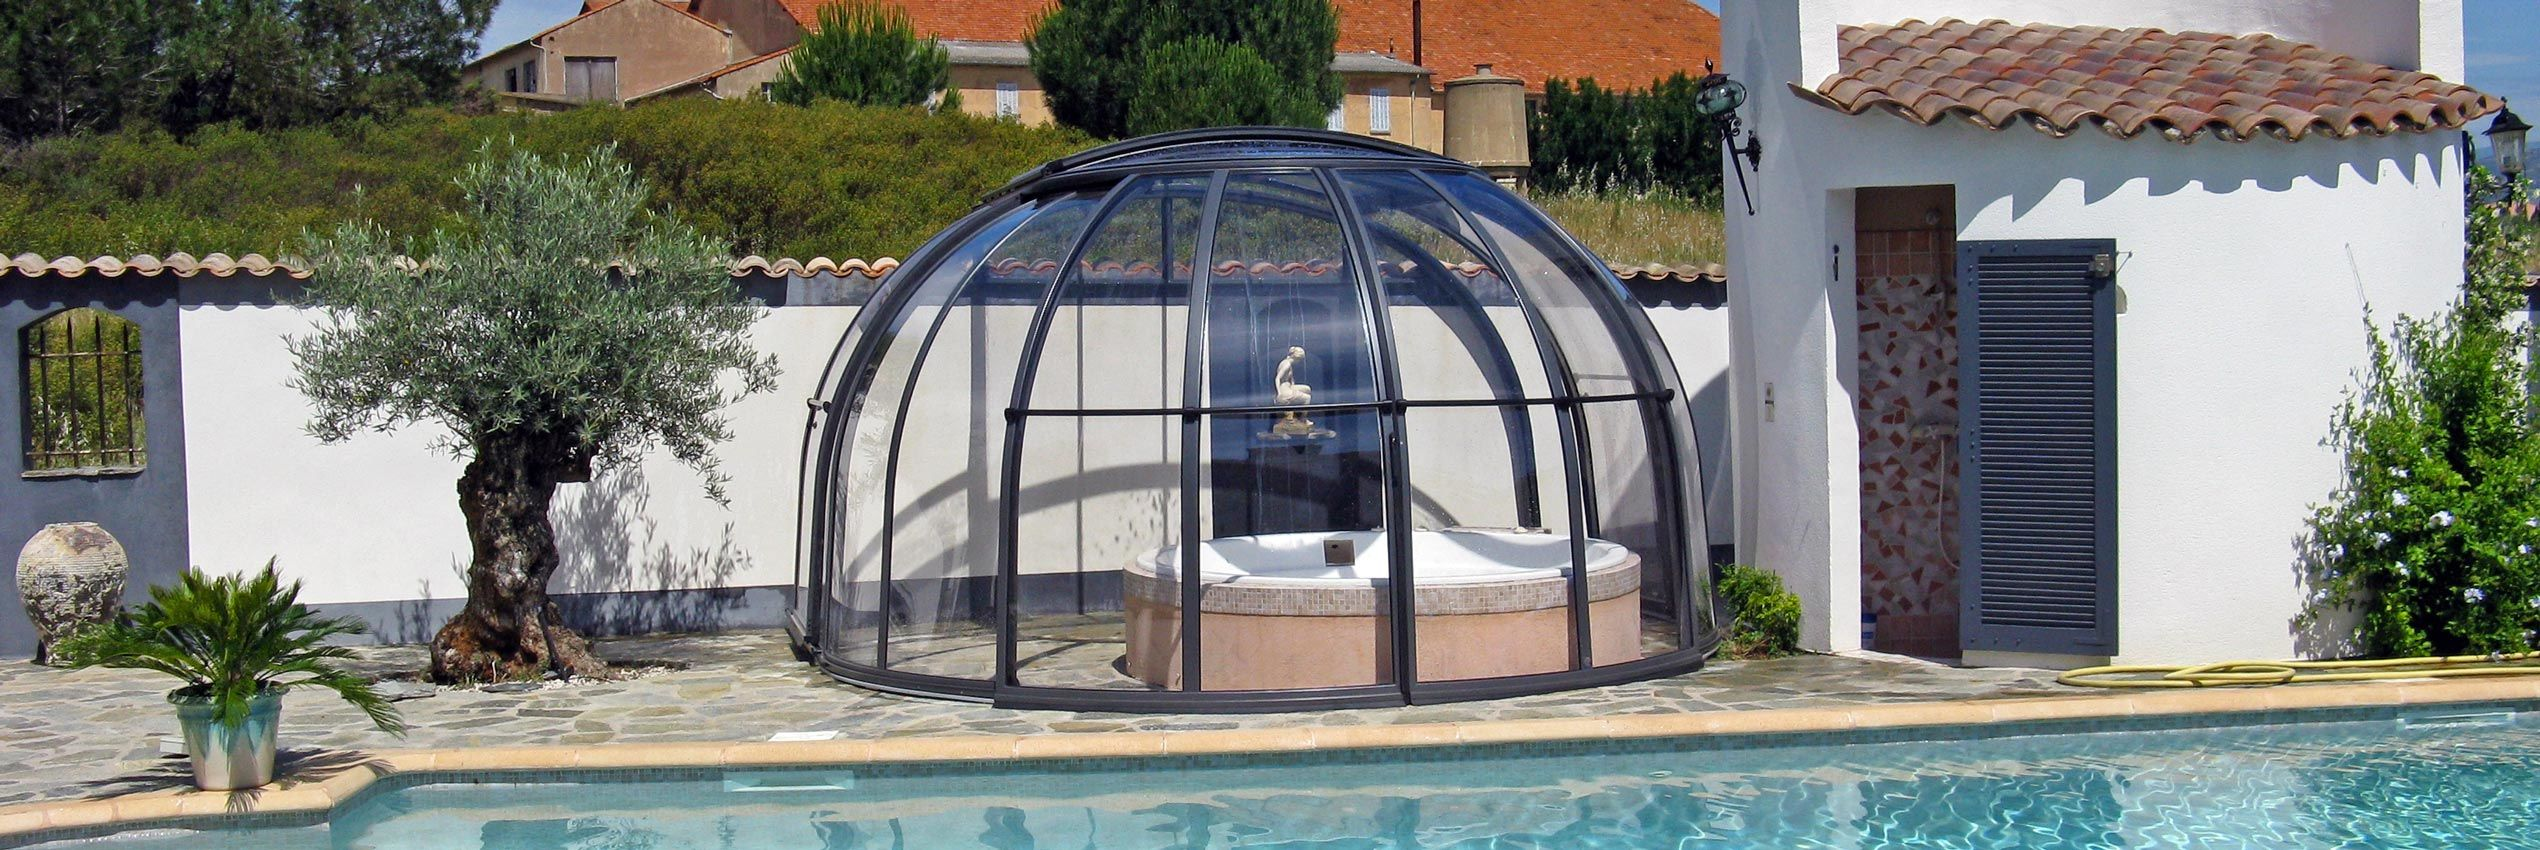 Closed hot tub enclosure Oasis